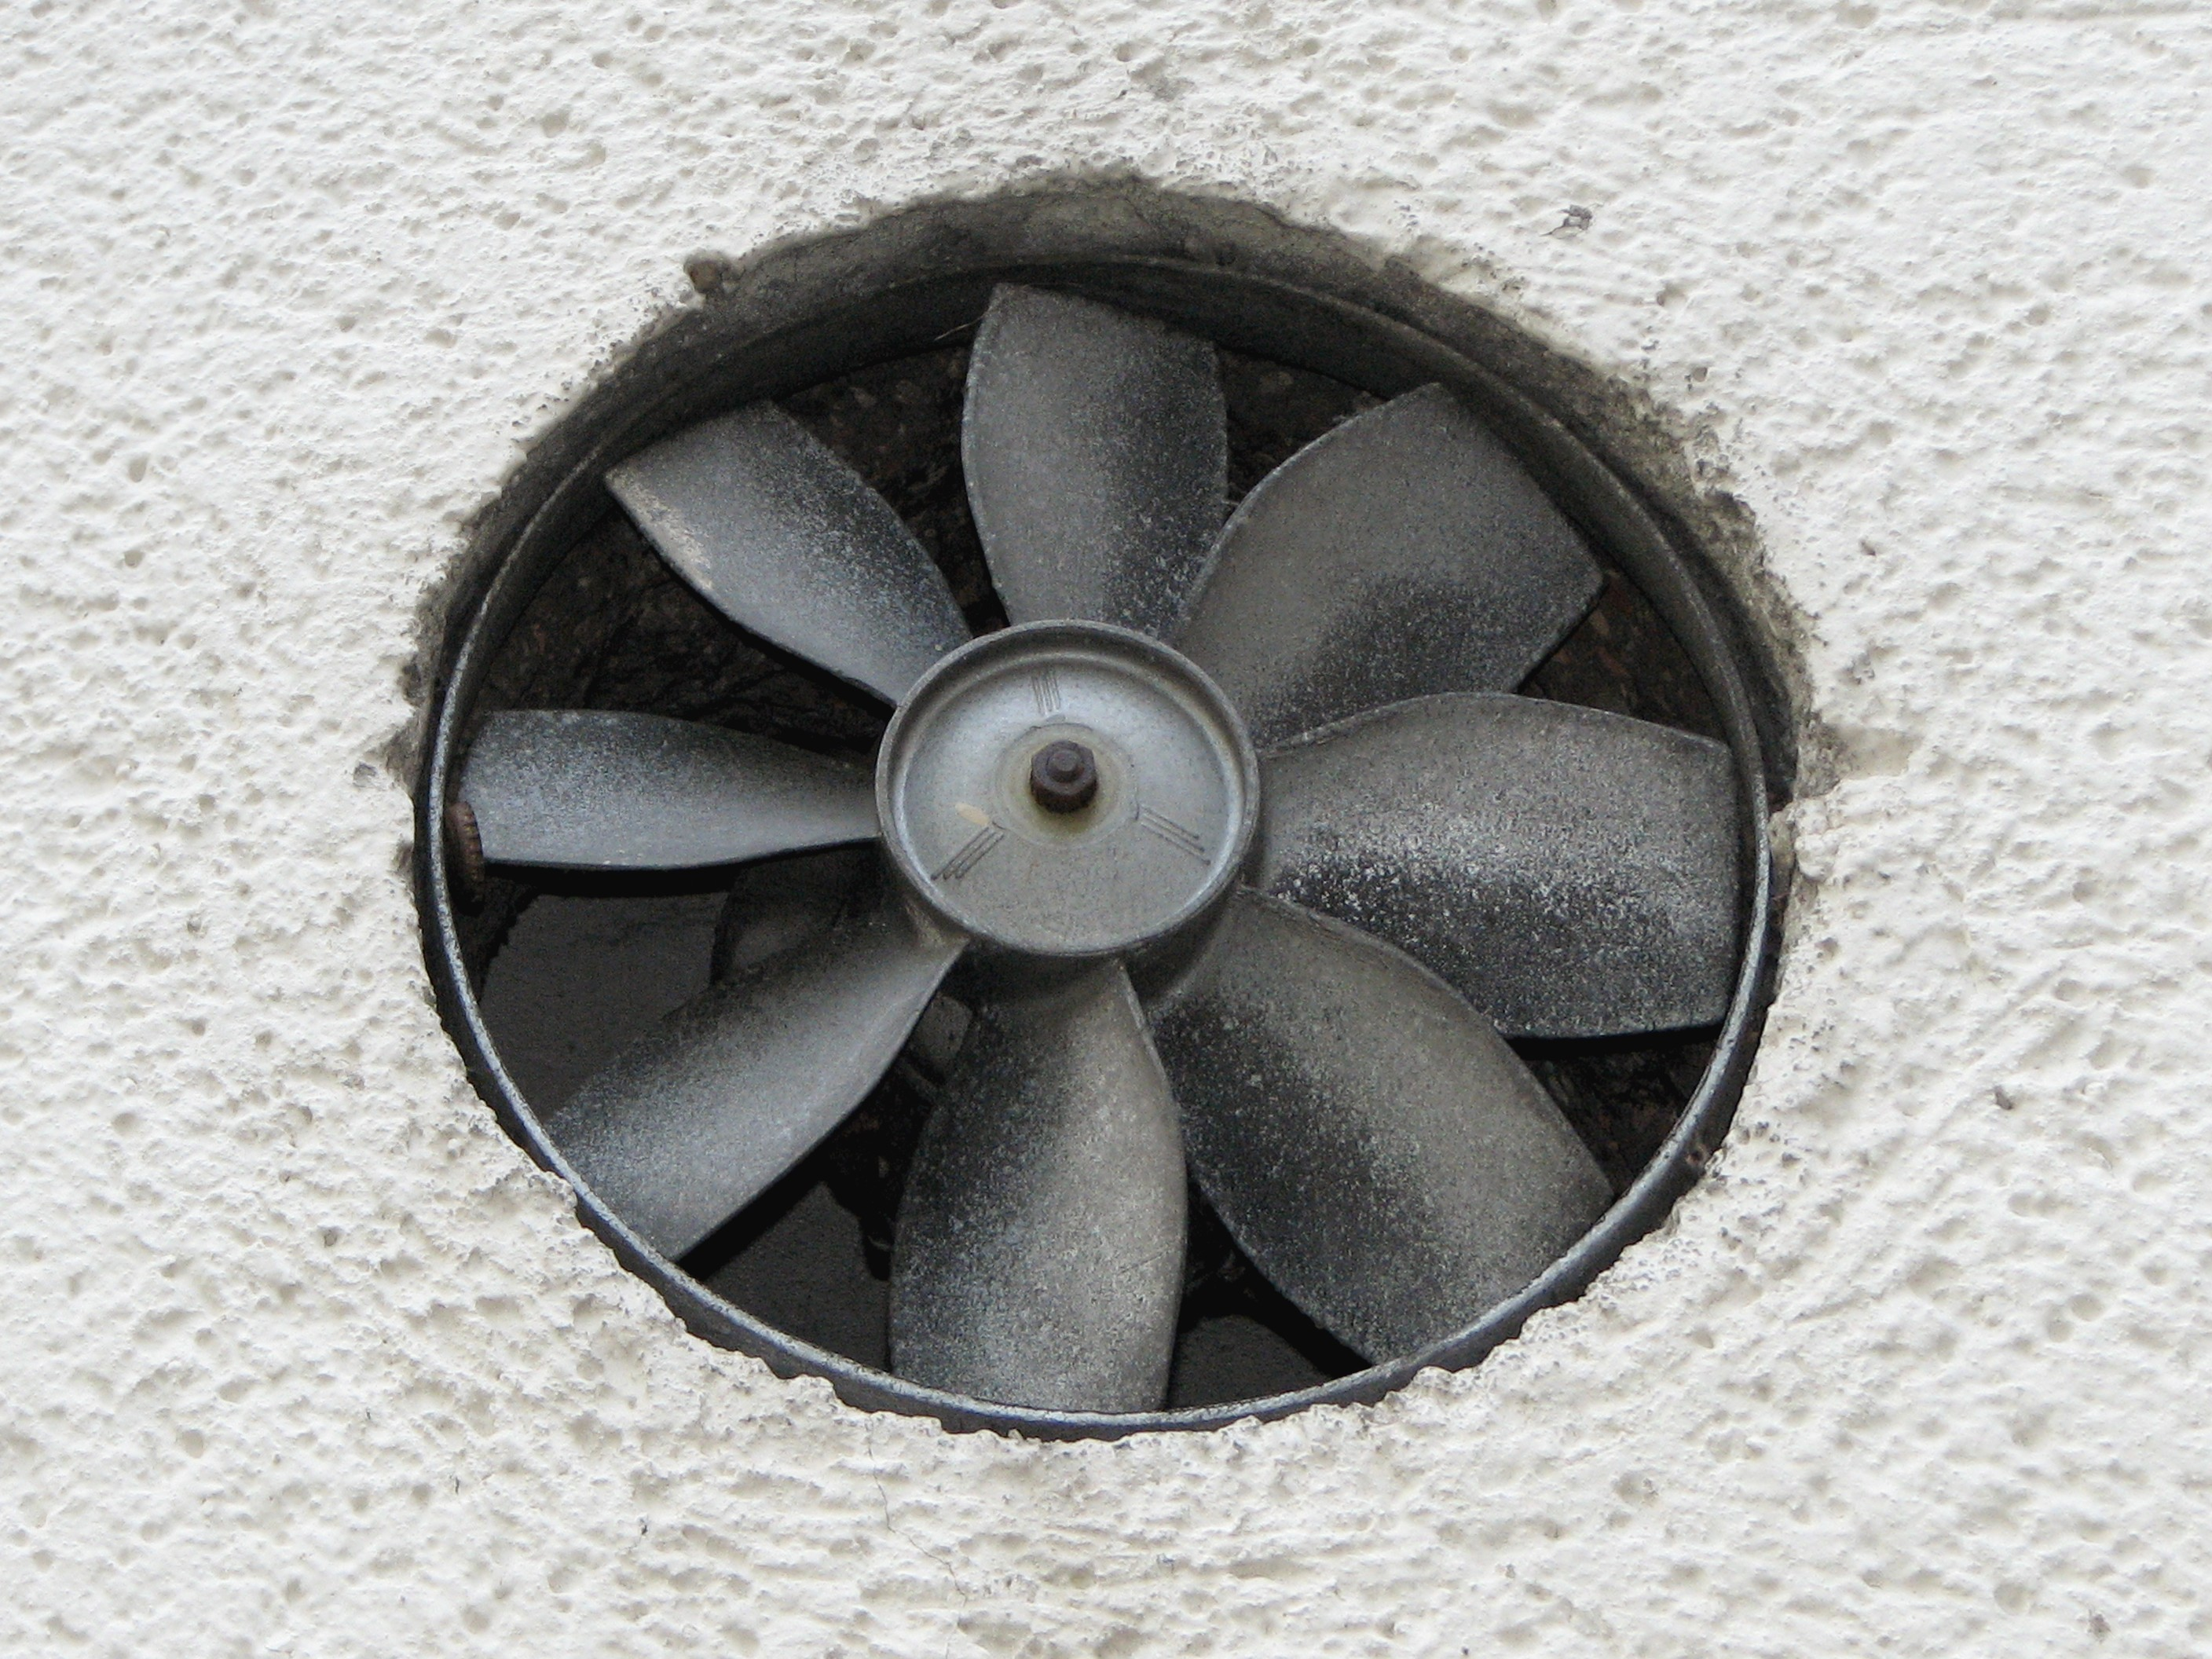 Kitchen Exhaust Fan Cleaning And Maintenance Tips And Tricks - How to clean bathroom fan